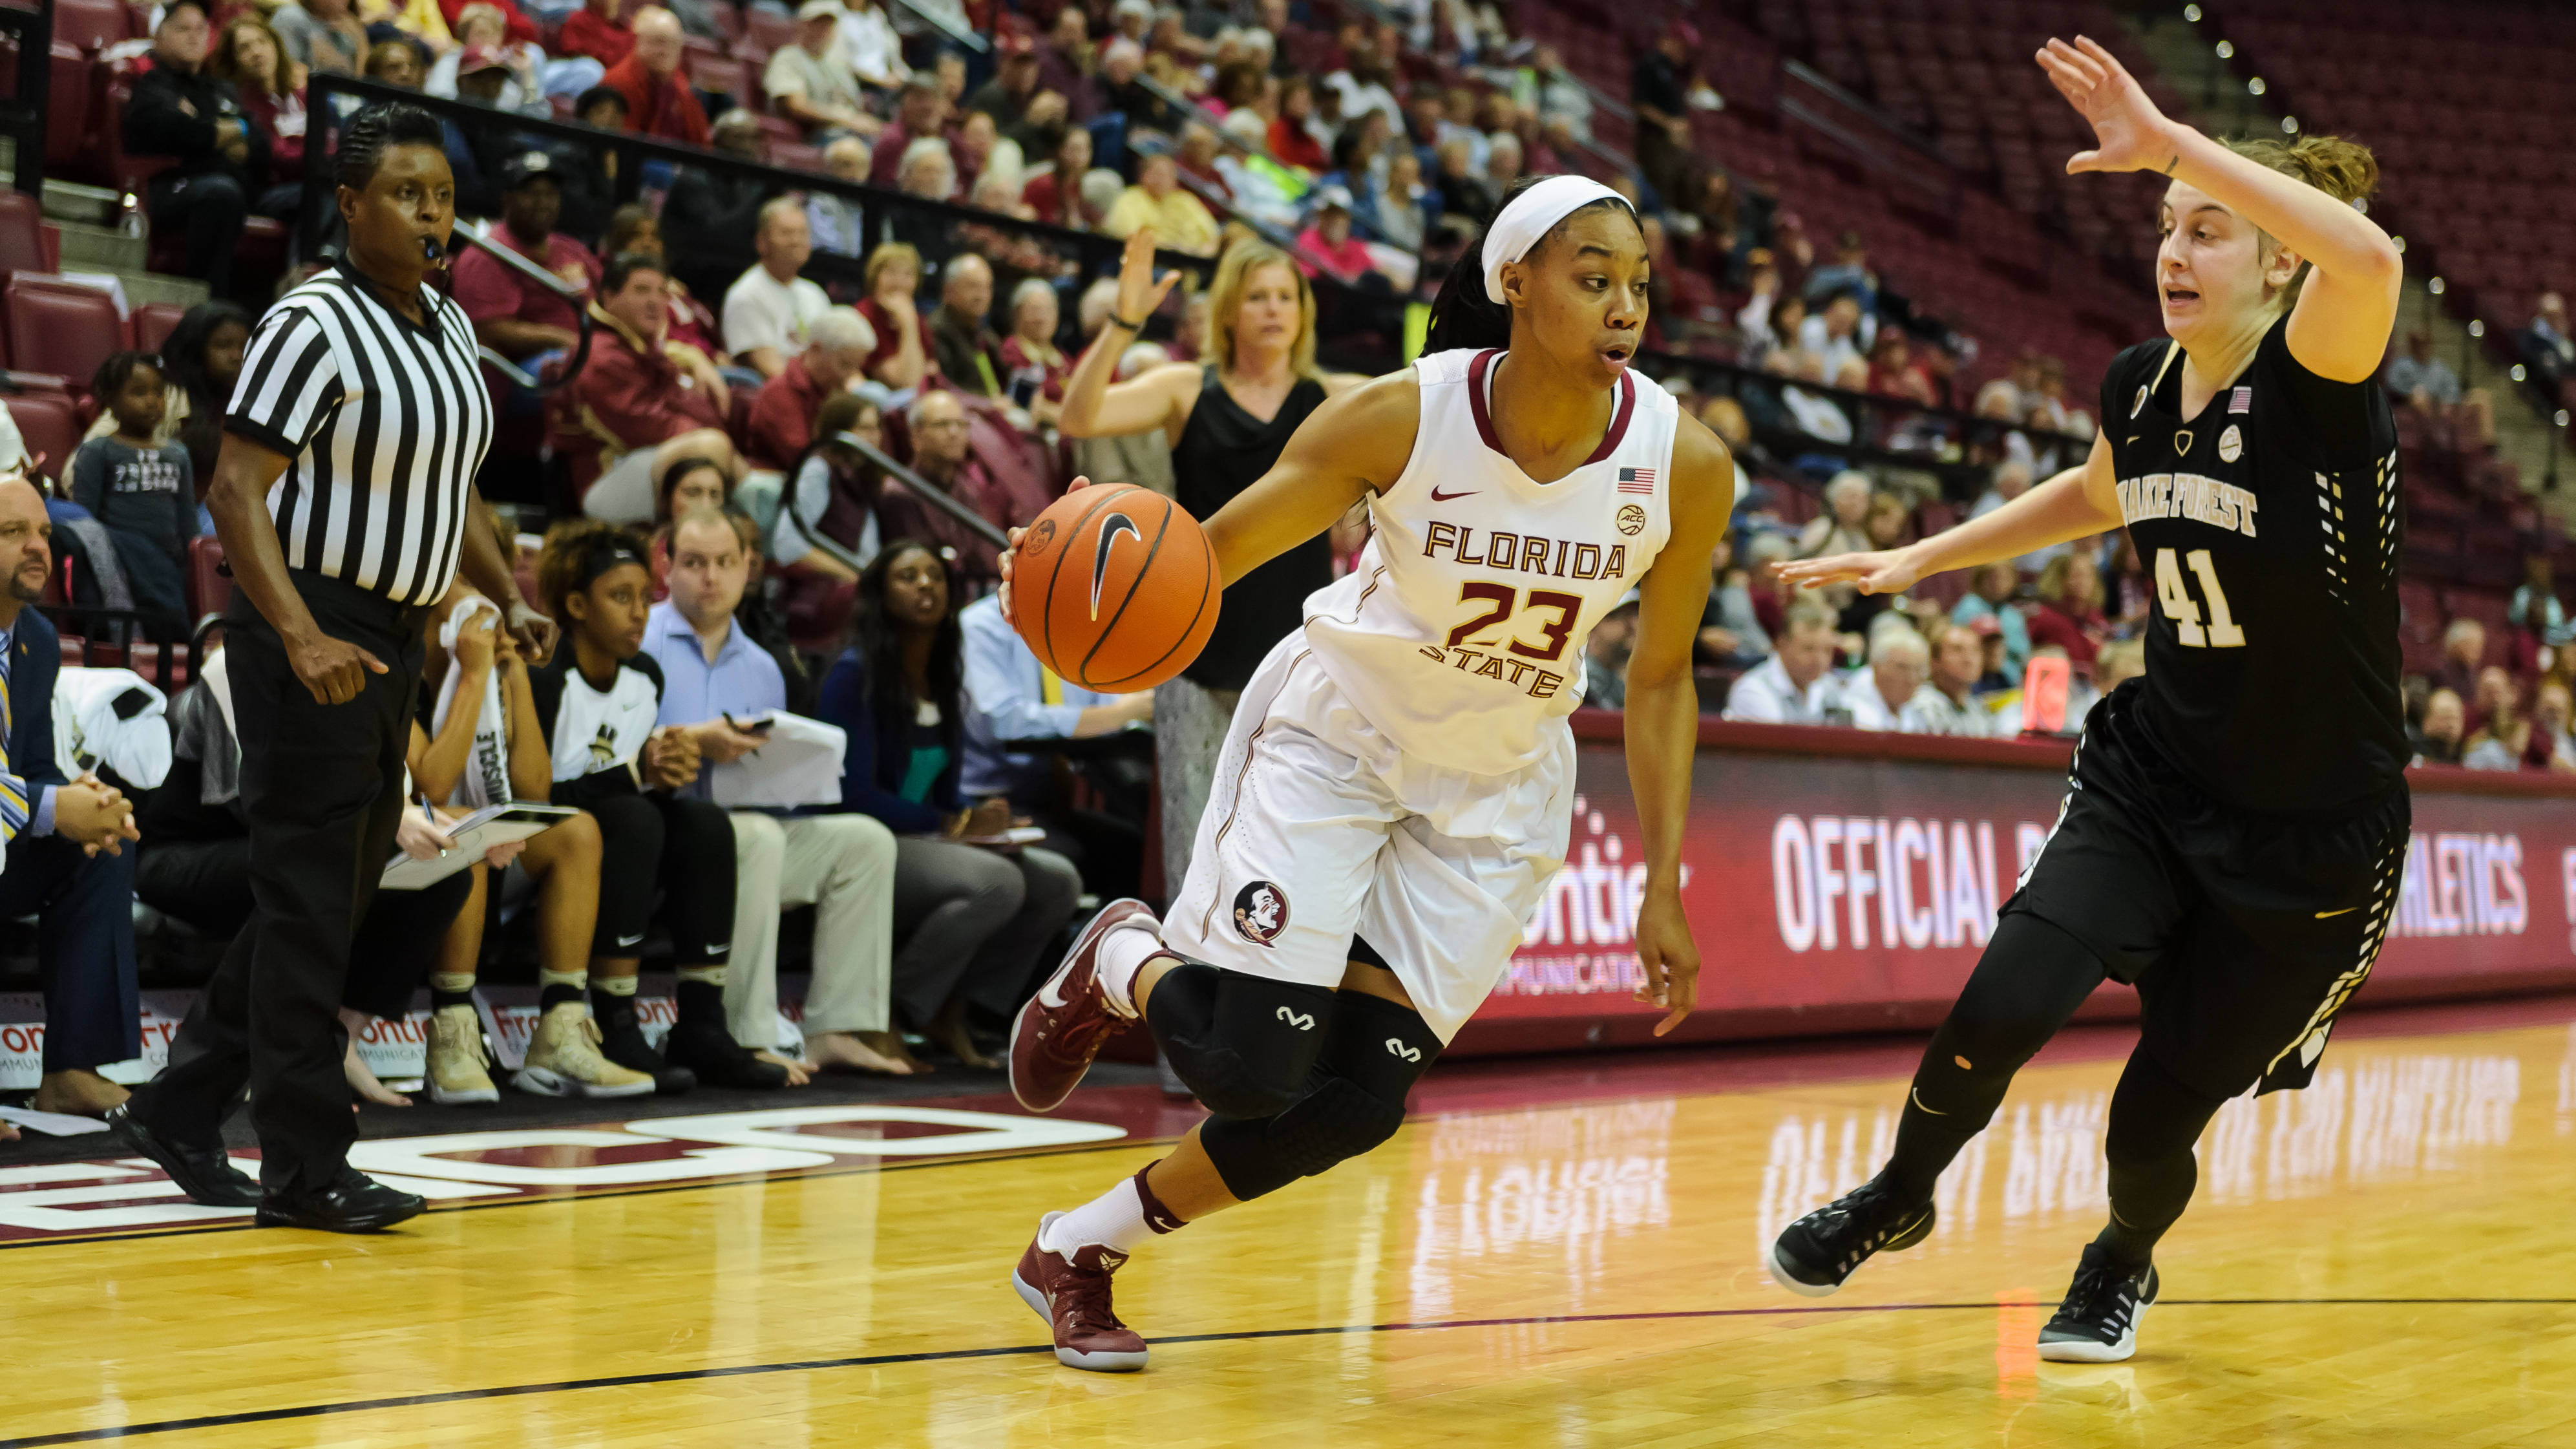 For just the fourth time in program history, FSU hung 100 points against an ACC team in a 102-60 win over Wake Forest.